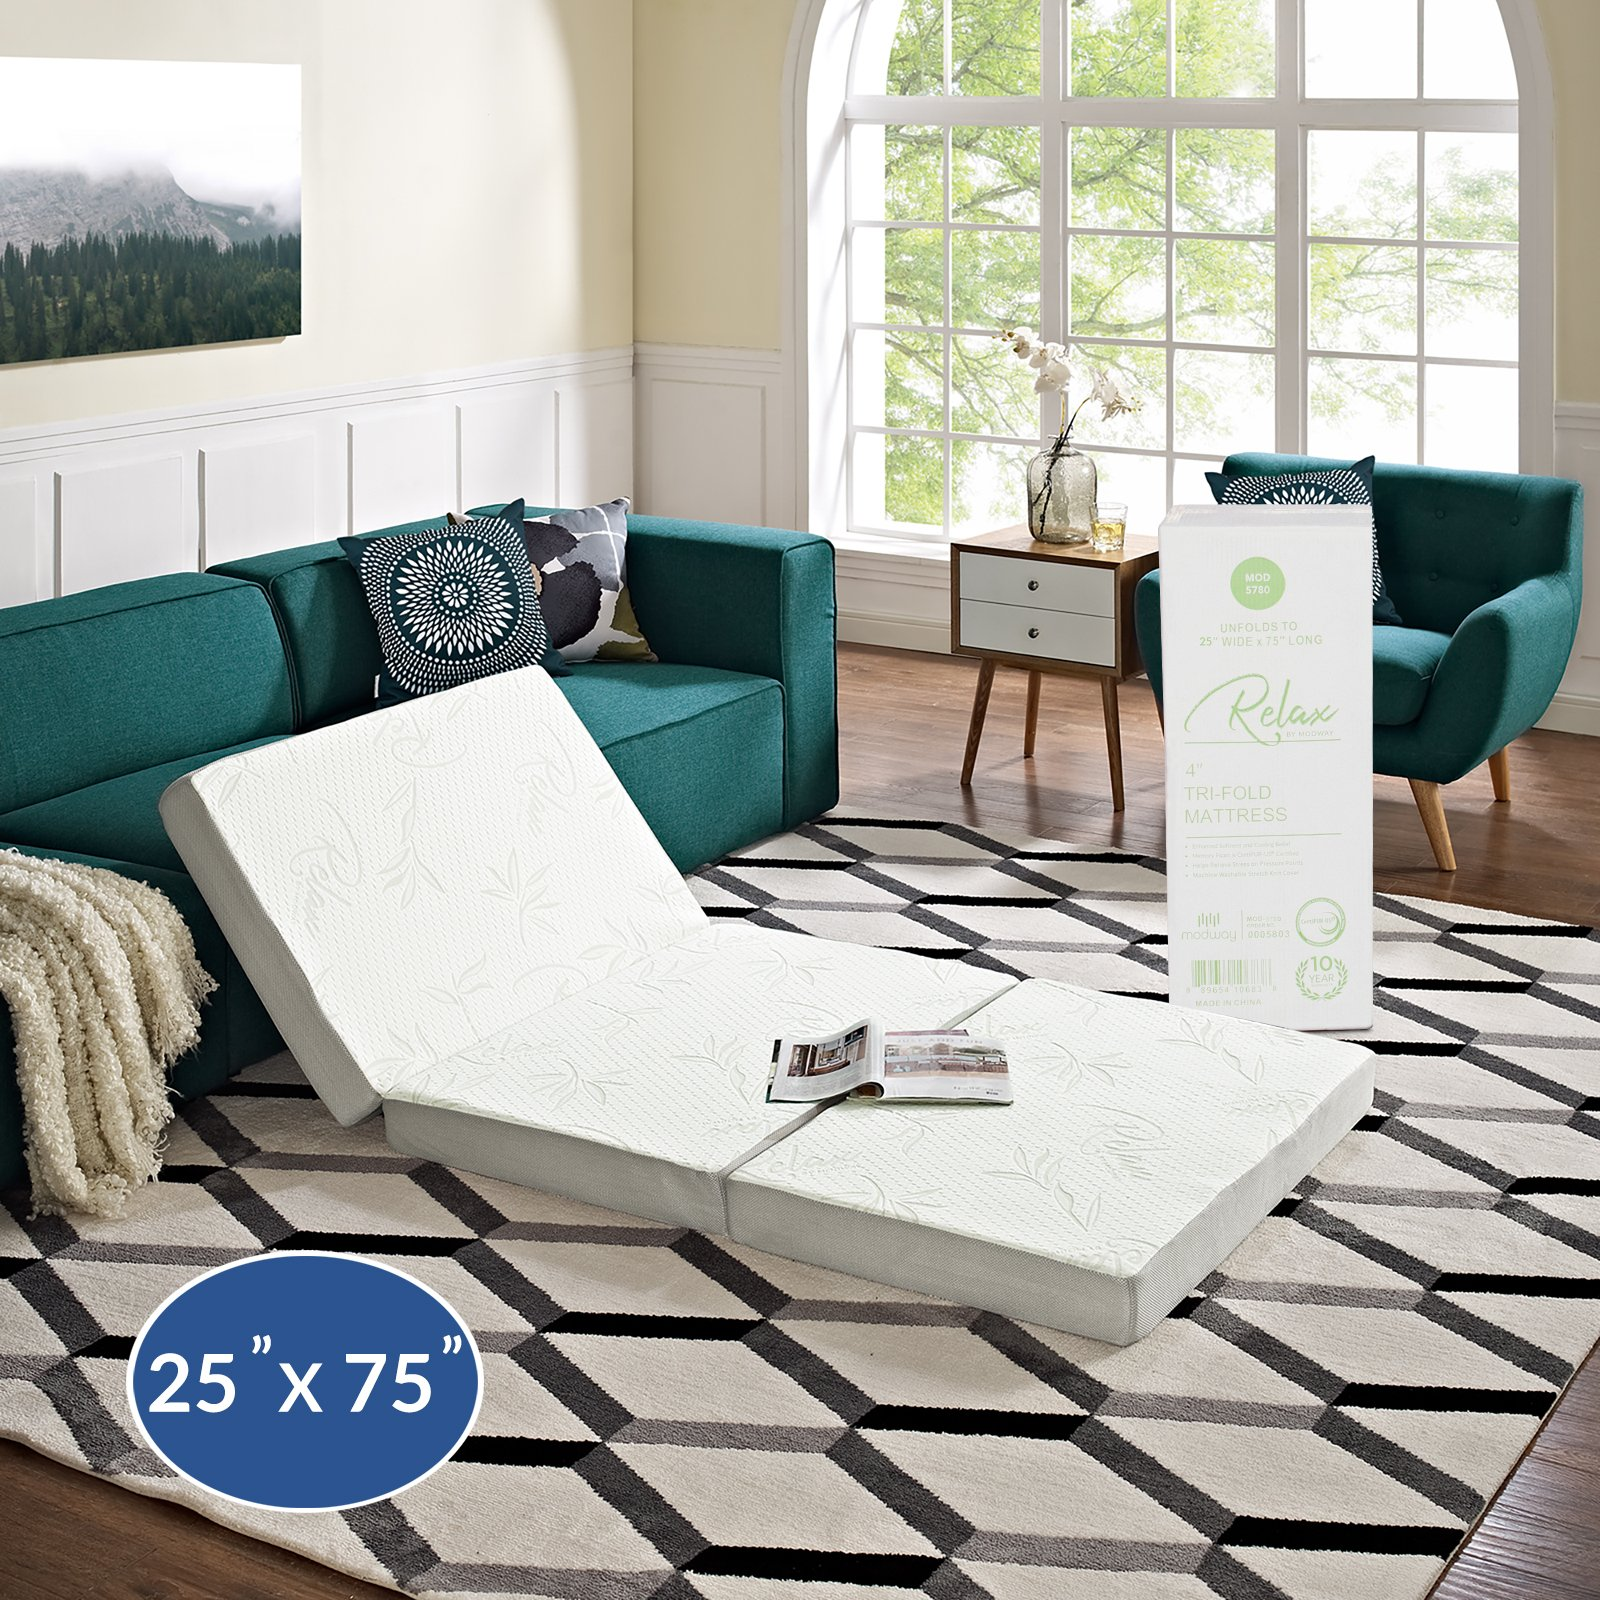 "Modway 4"" Relax Tri-Fold Mattress CertiPUR-US Certified with Soft Removable Cover and Non-Slip Bottom (25'' x 75"") - 10-Year Warranty by Modway"